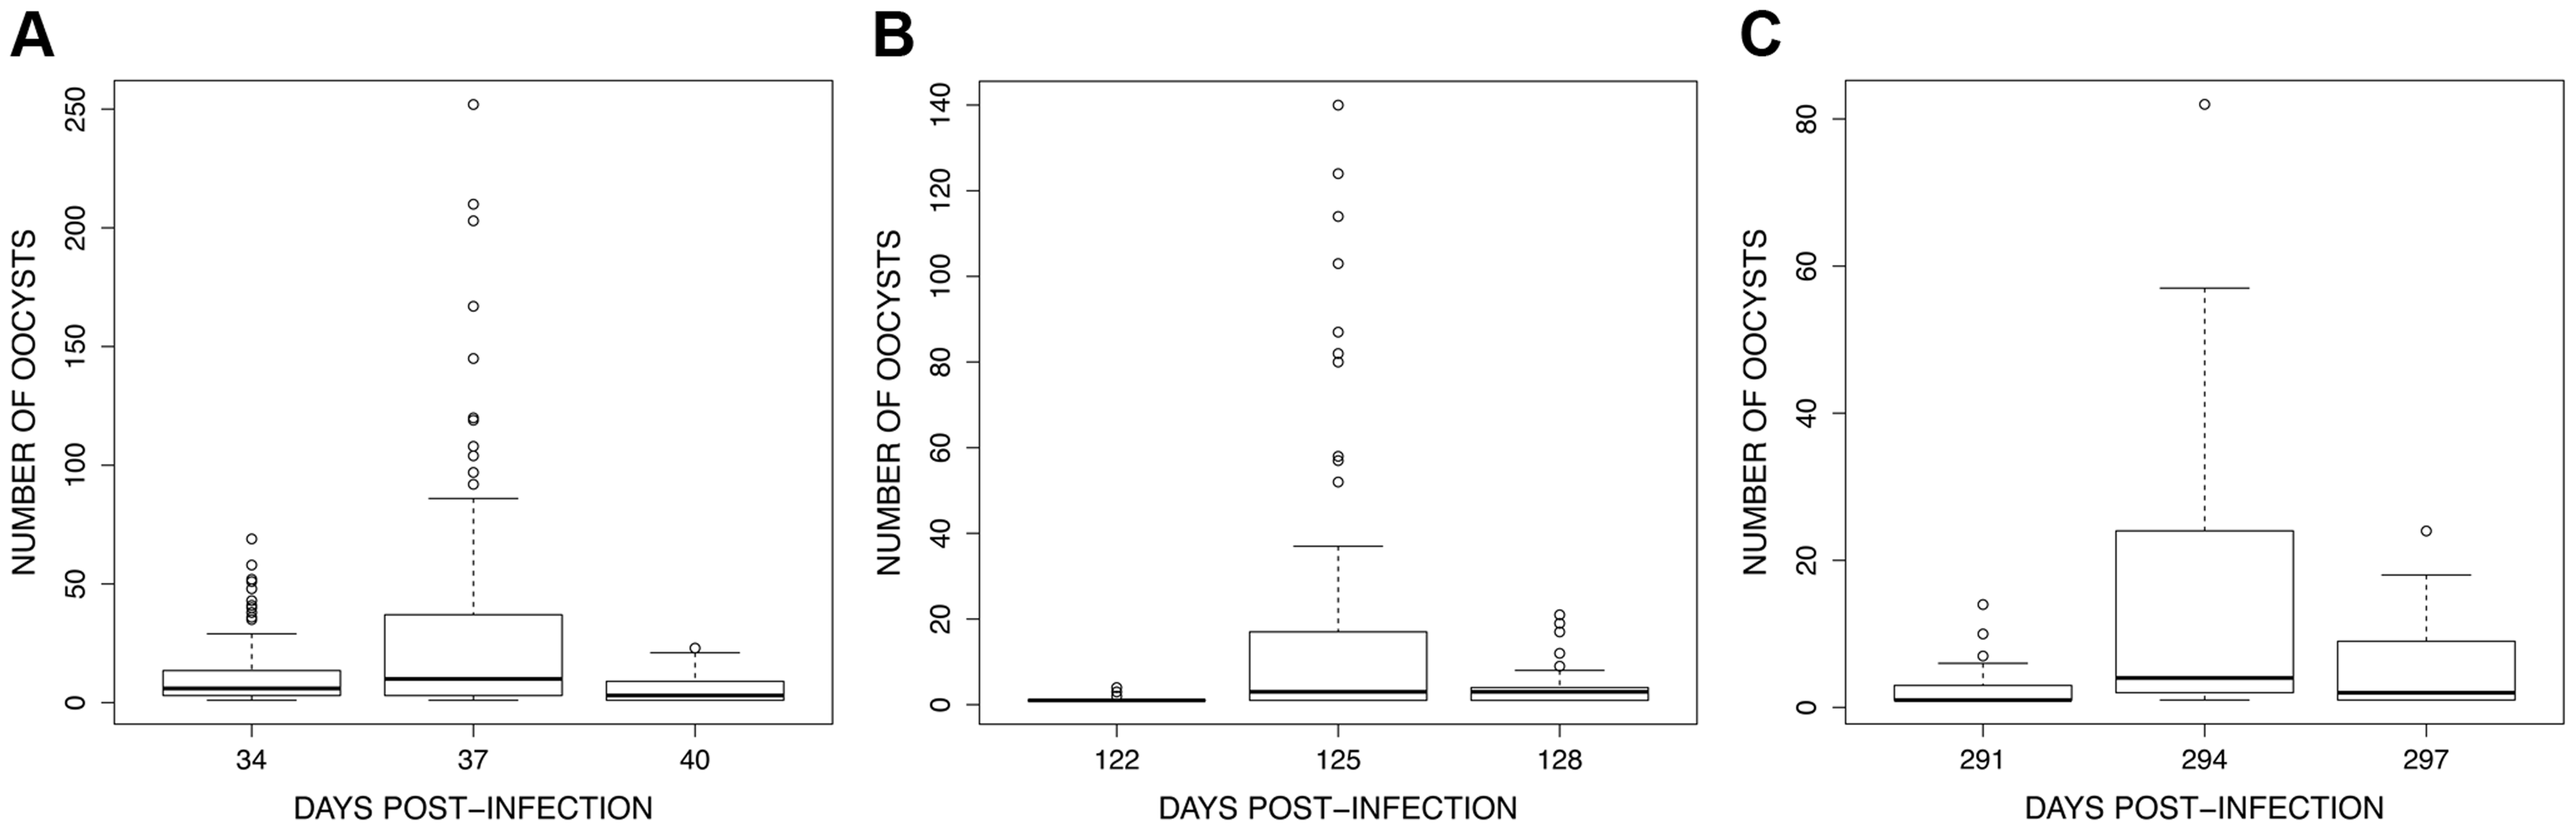 """Boxplot of the number of oocysts per midgut among 15 haphazardly chosen blood fed individuals on each bird (only includes mosquitoes harbouring ≥1 oocysts) for the 3 exposure sessions (see <em class=""""ref"""">Fig. 4</em>): (A) session 1 (34–40 dpi), (B) session 2 (122–128 dpi) and (C) session 3 (291–297 dpi)."""